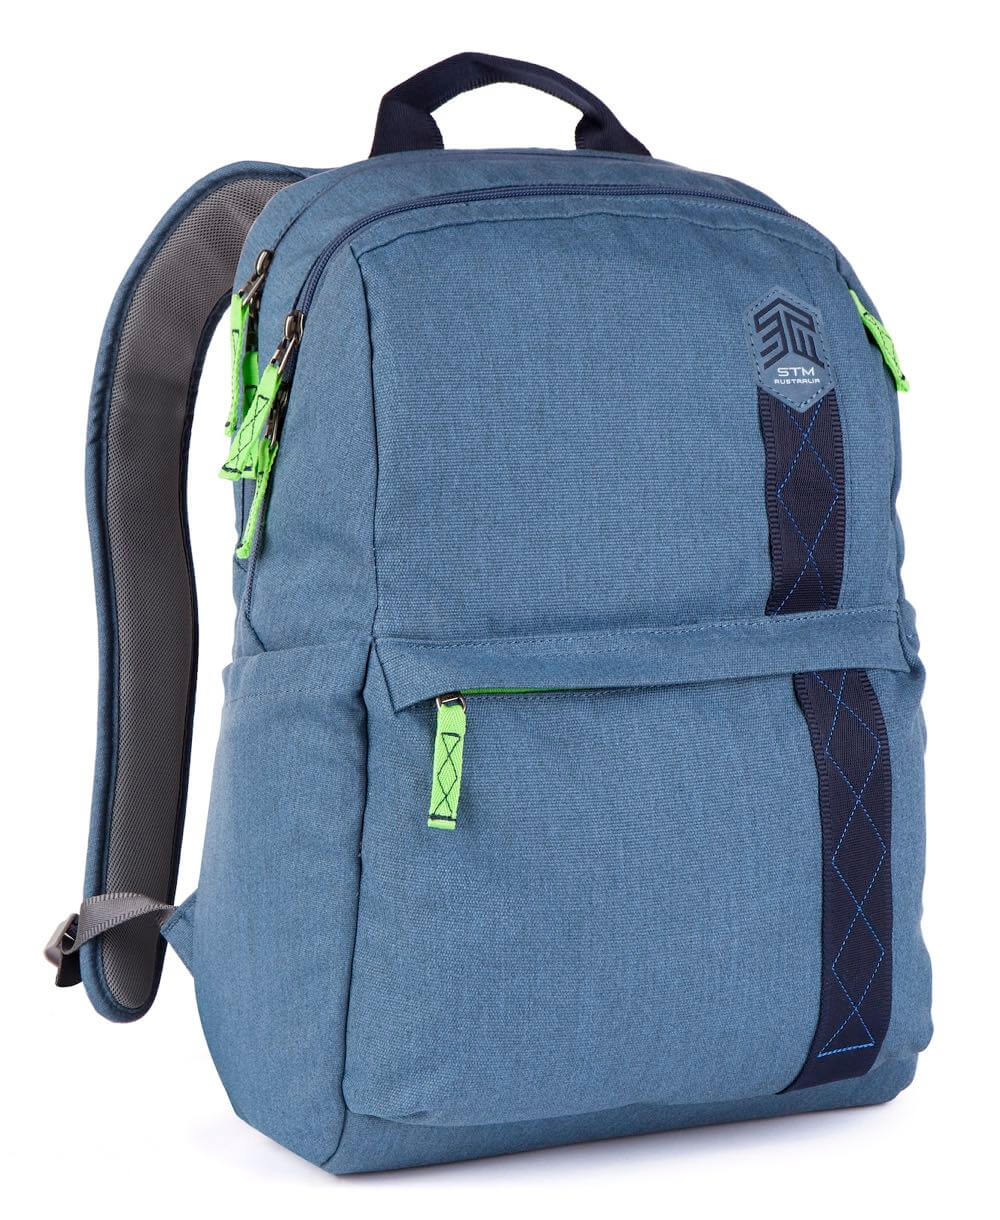 The STM Banks backpack